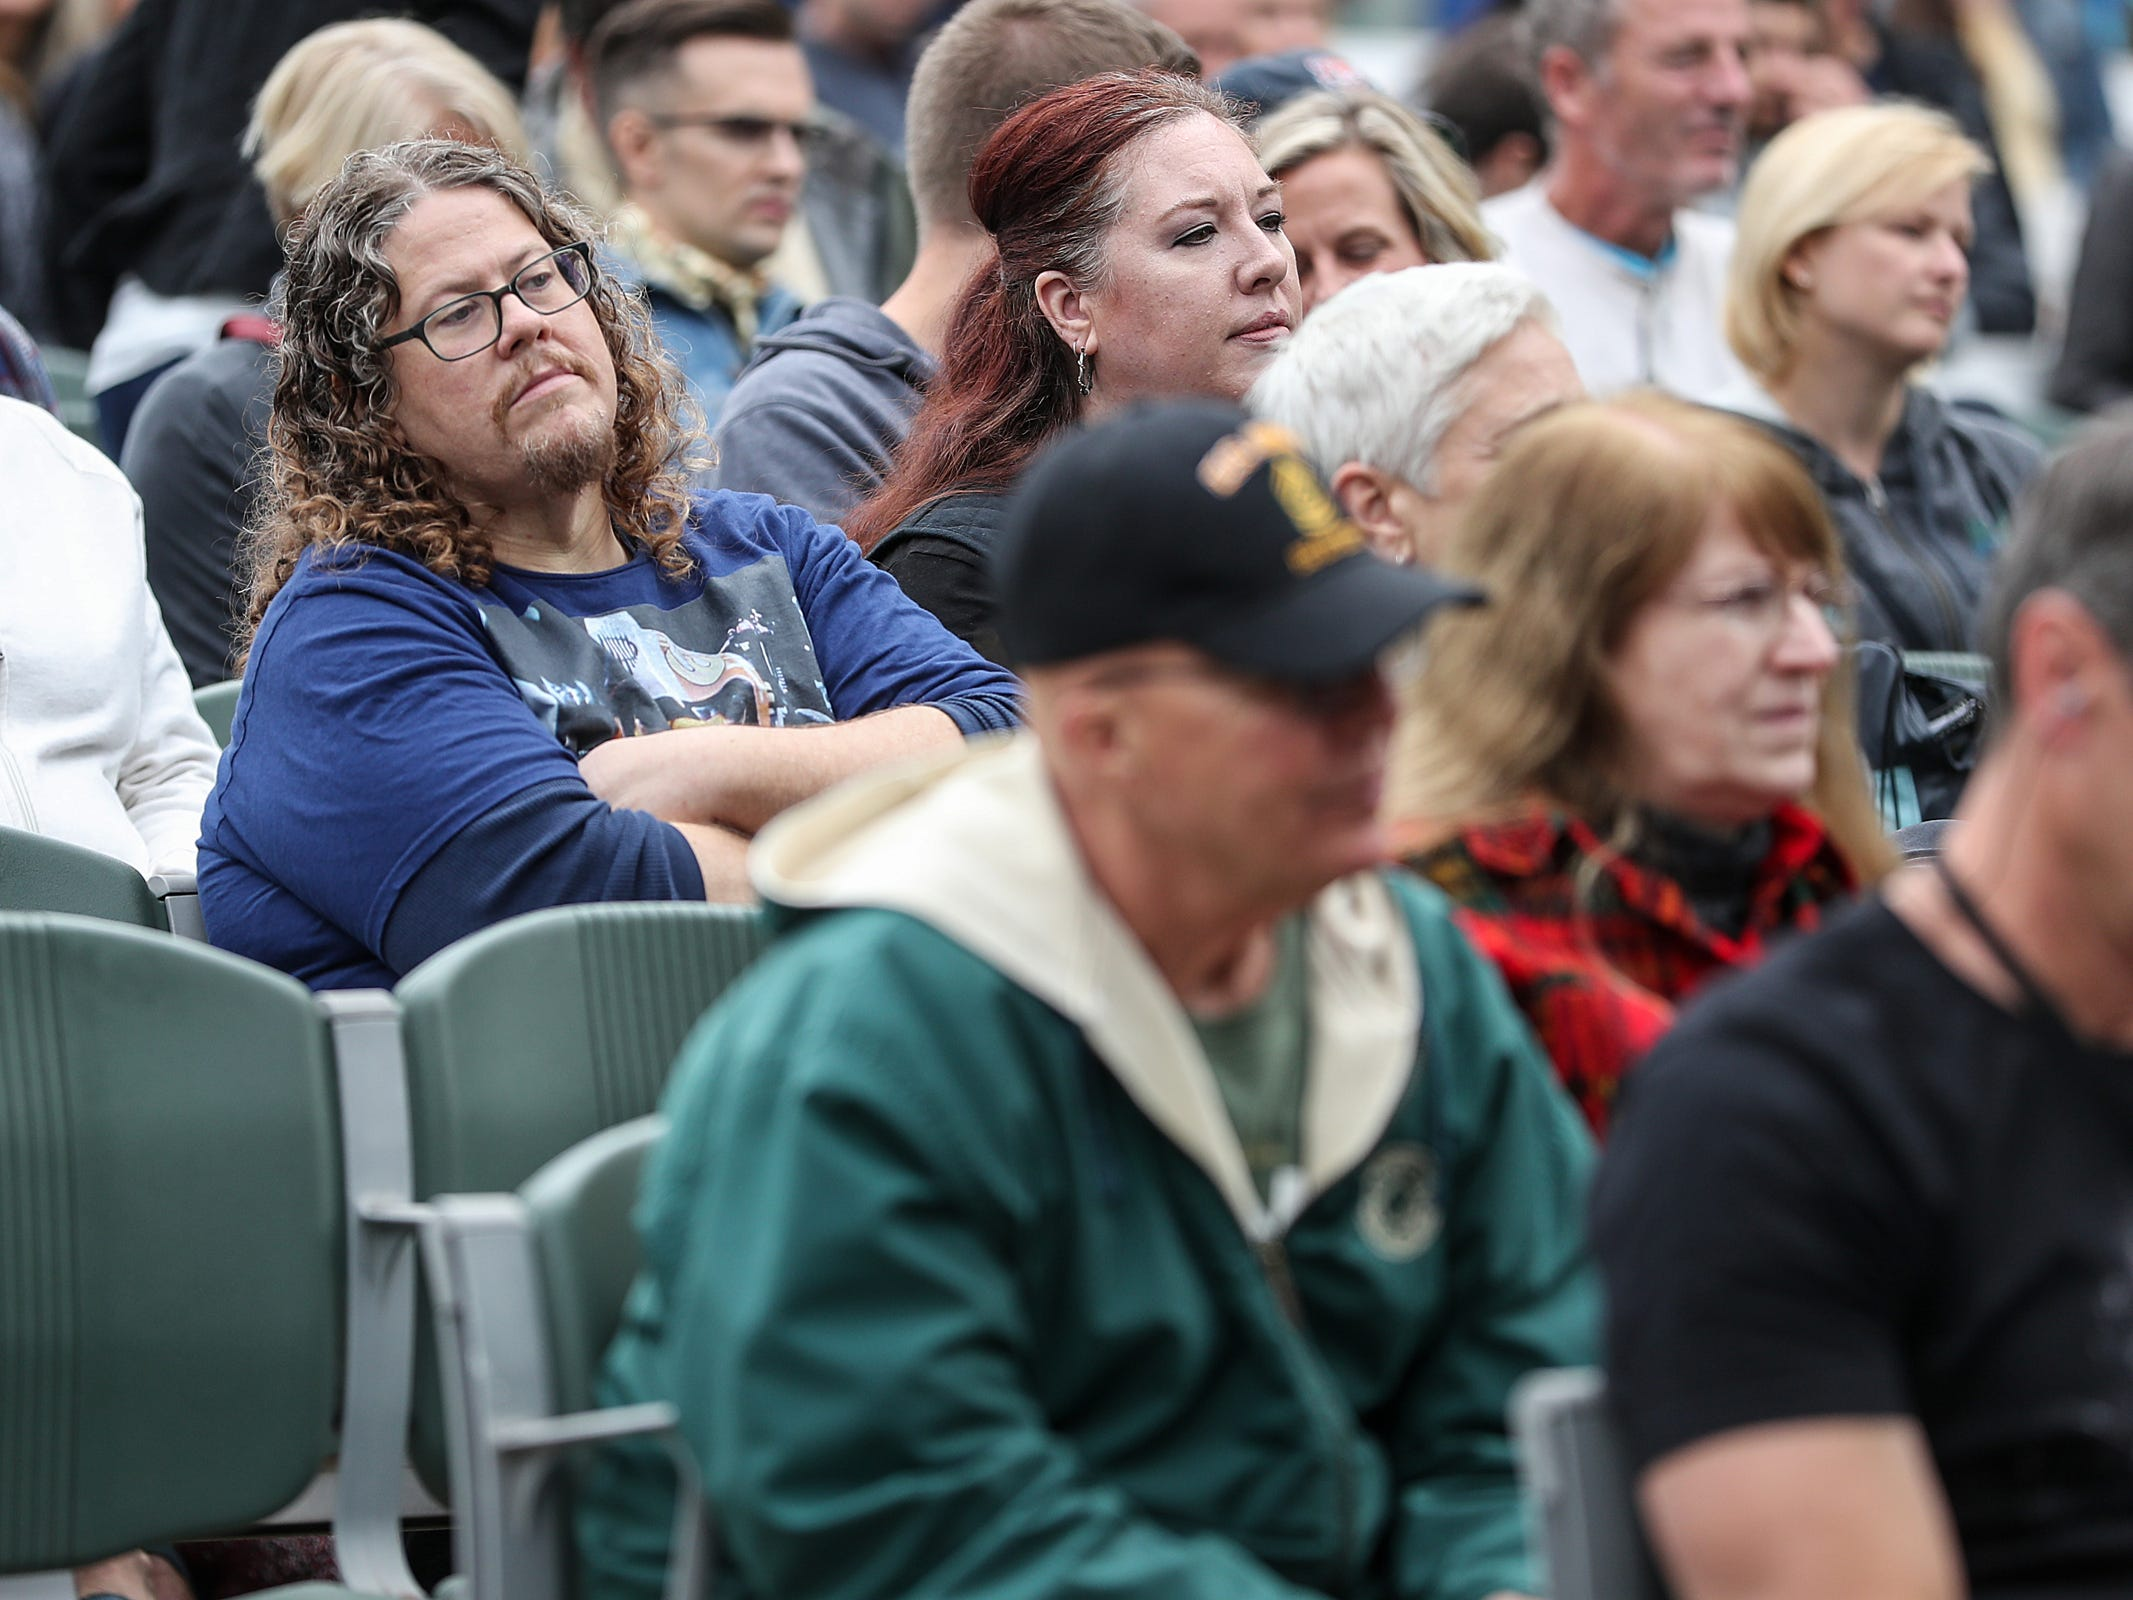 Spectators listen as Americana music artists perform at the inaugural Holler on the Hill music festival at Garfield Park in Indianapolis, Saturday, Sept. 22, 2018. The festival features more than 30 performers across three stages on September 22 and 23.